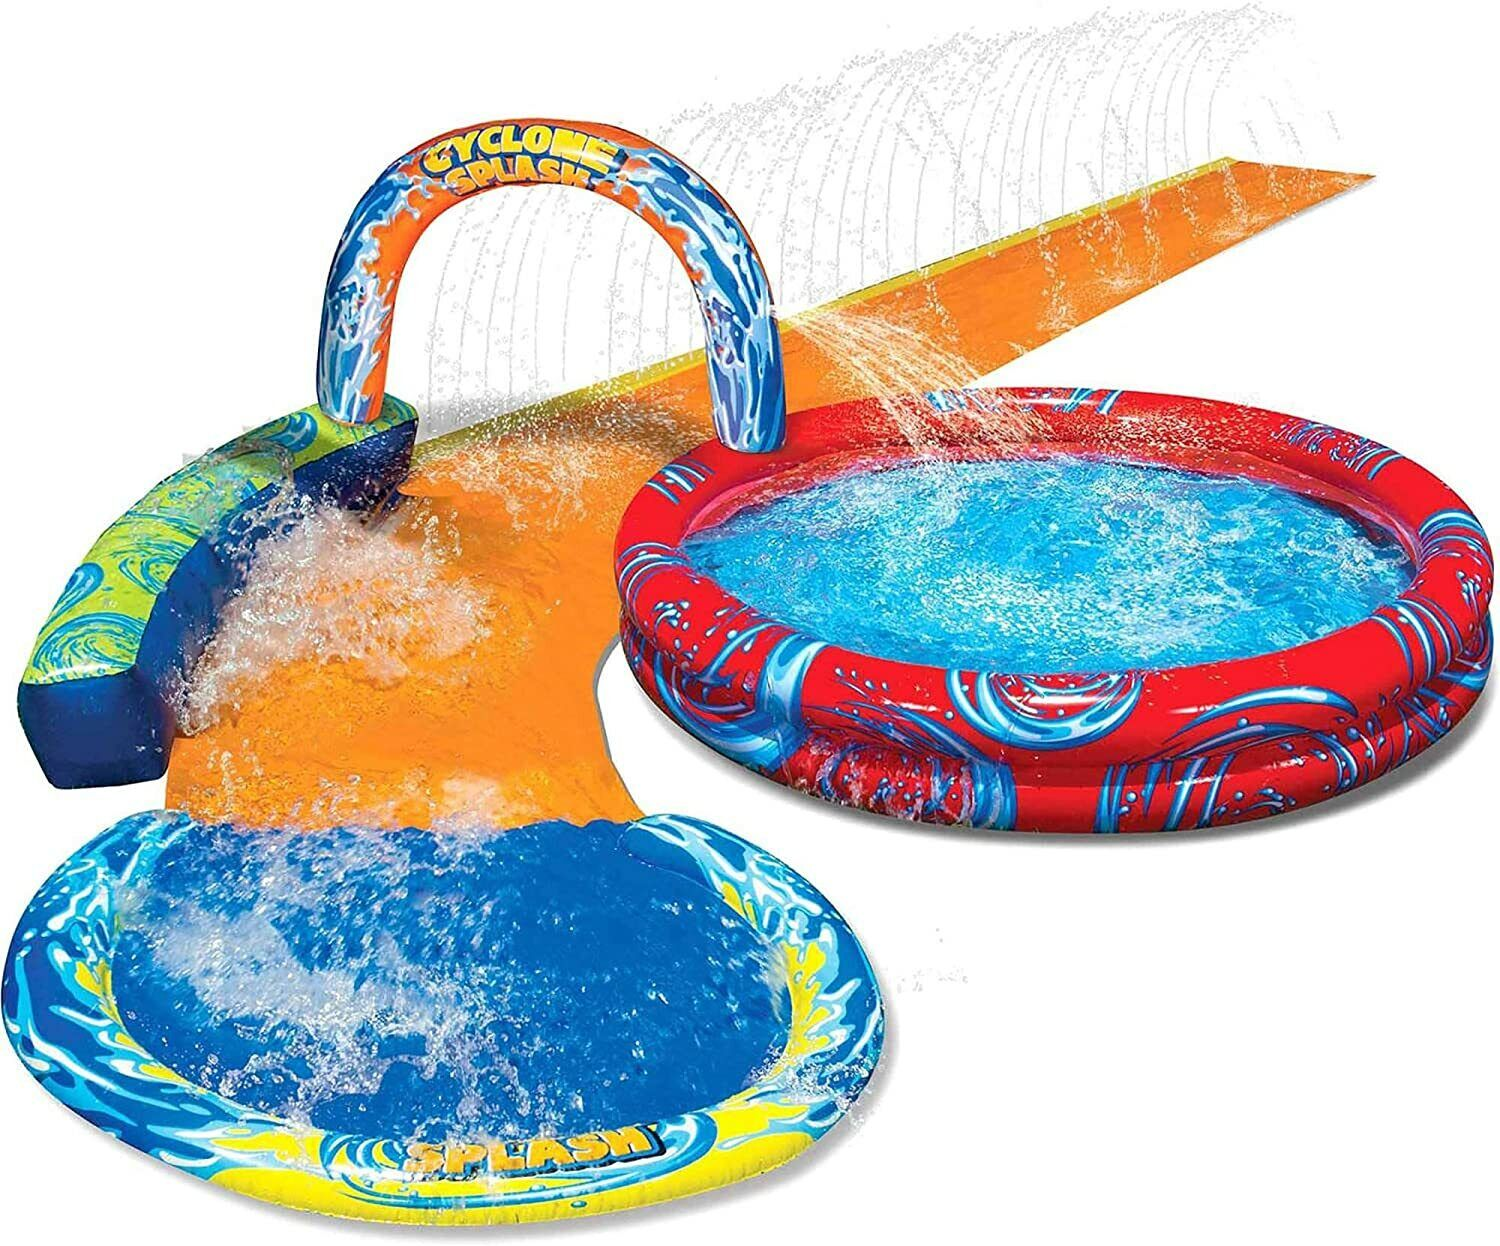 Banzai Cyclone Splash Pool and Cuved Water Slide Outdoor Wat